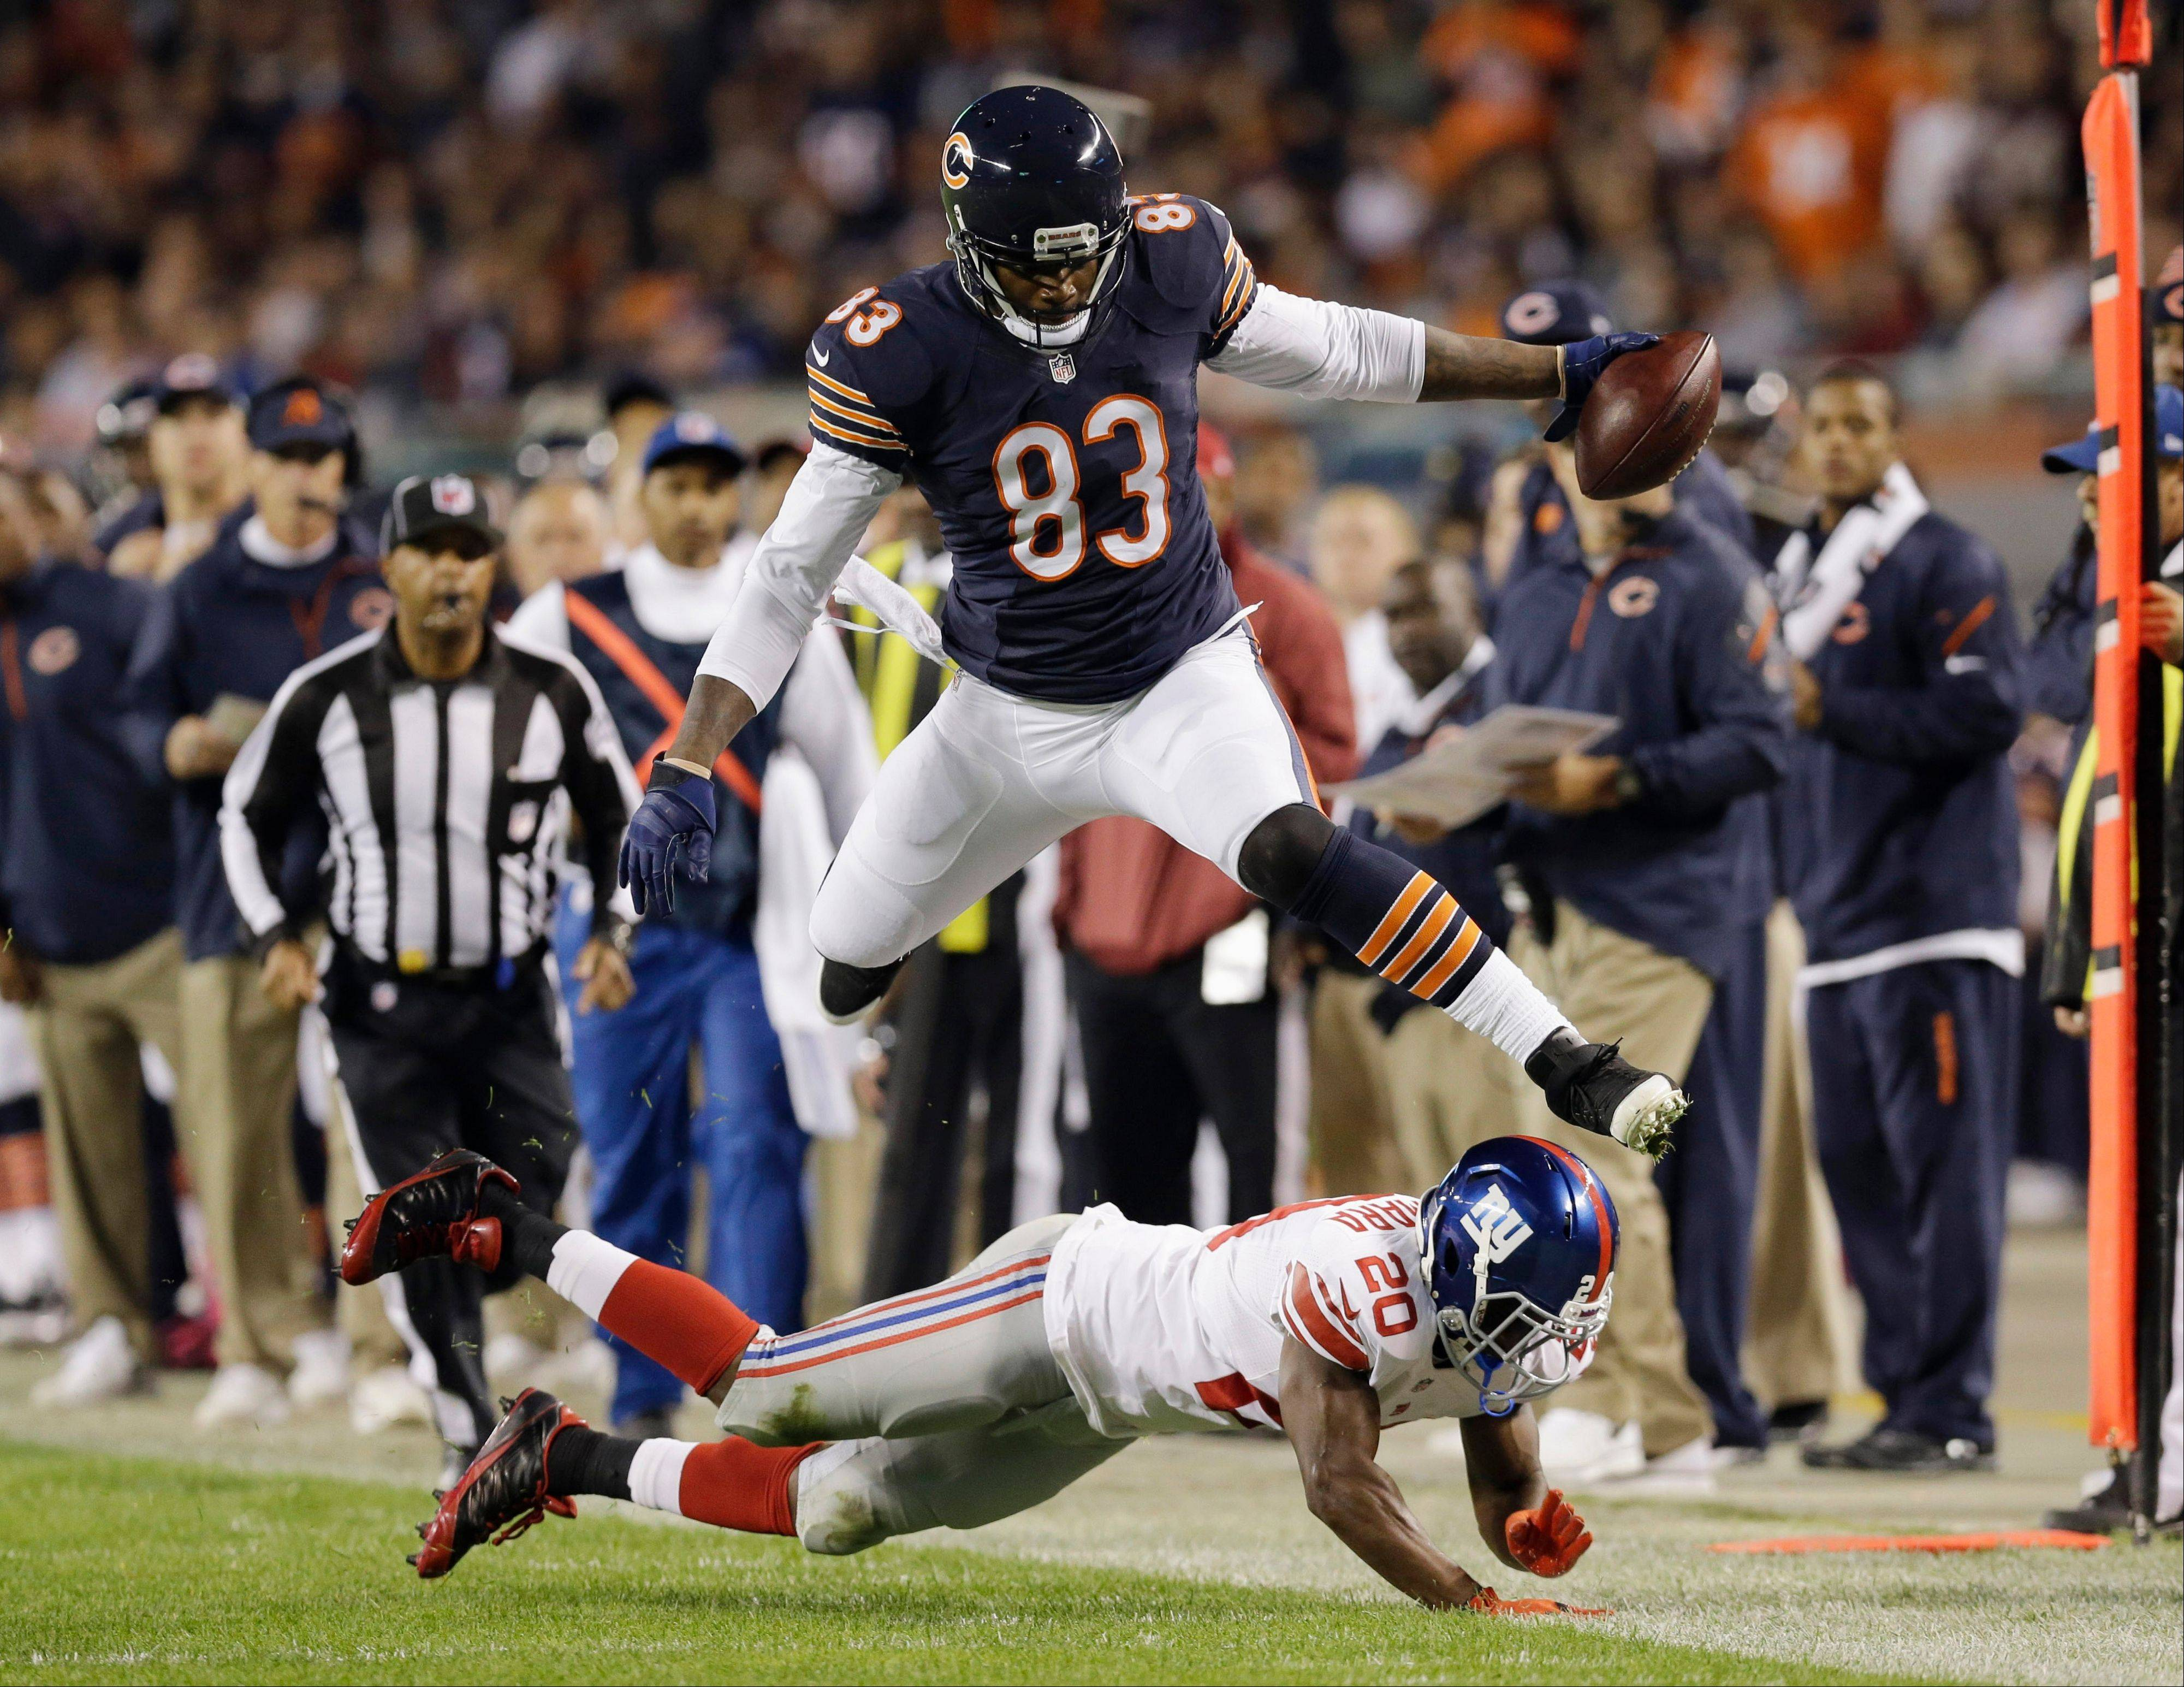 Chicago Bears tight end Martellus Bennett (83) leaps over New York Giants cornerback Prince Amukamara (20) in the first half of an NFL football game, Thursday, Oct. 10, 2013, in Chicago. (AP Photo/Nam Y. Huh)